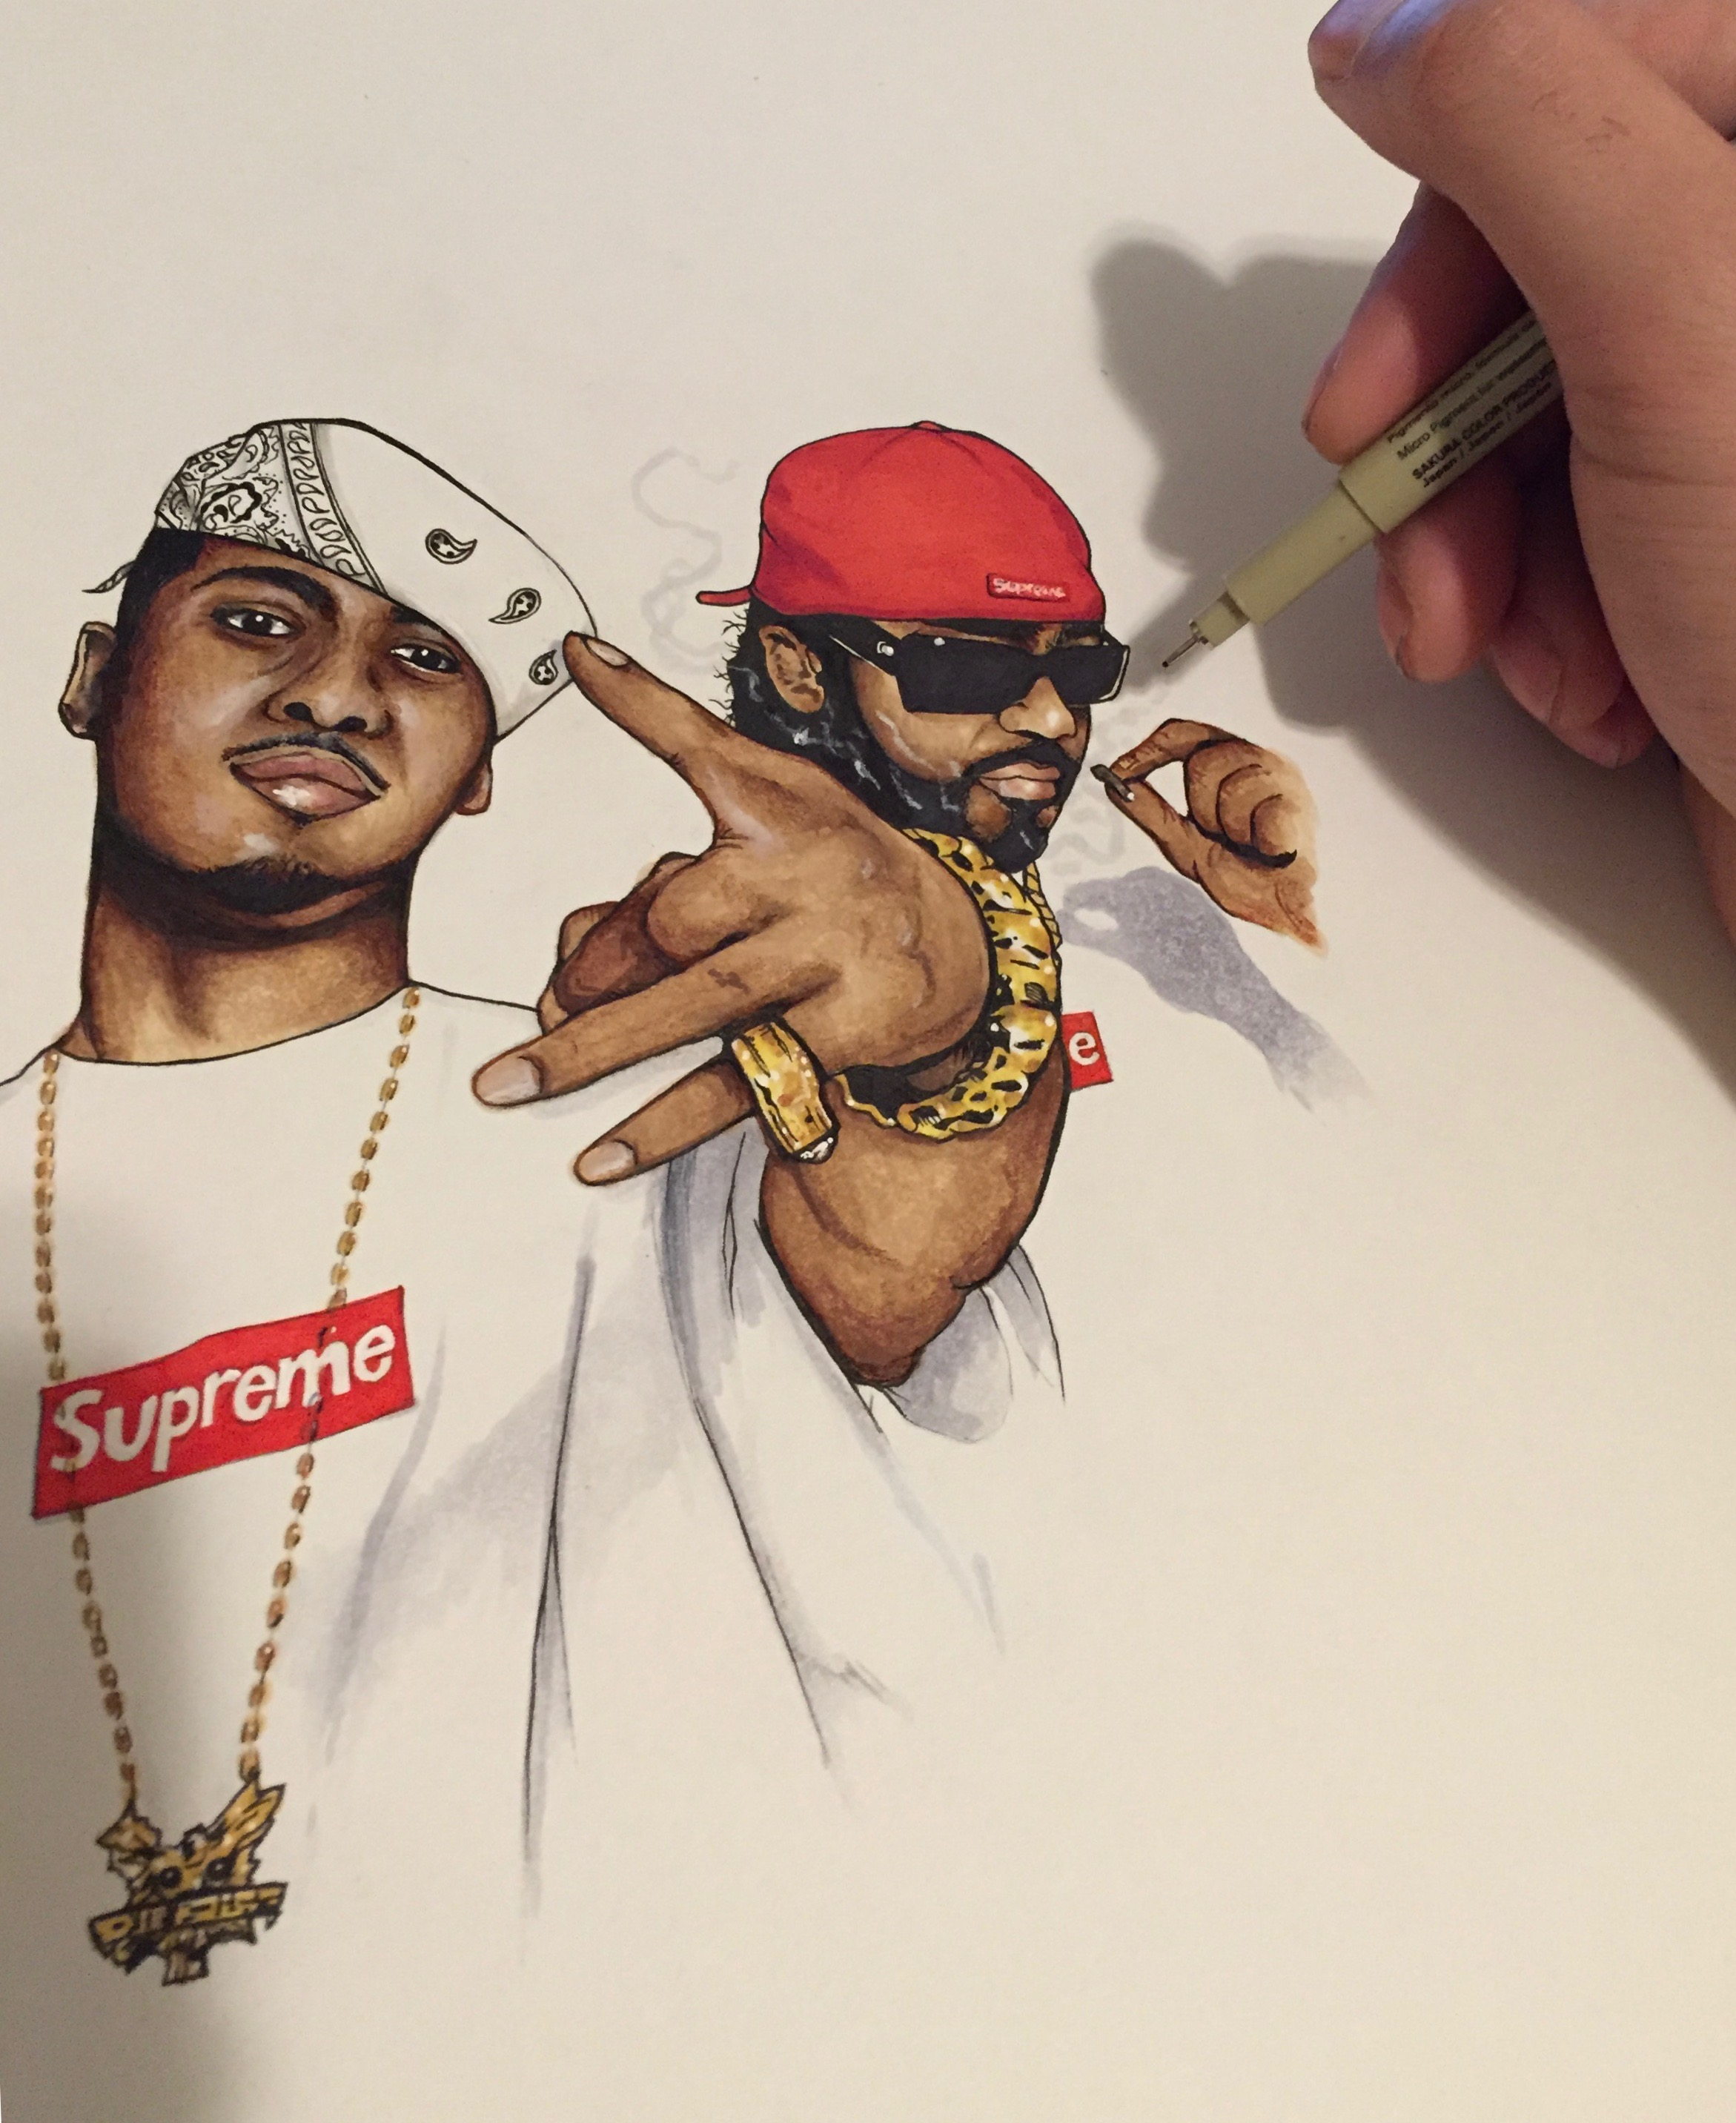 Juelz Santana x Jim Jones in Supreme by Nover, 2015.